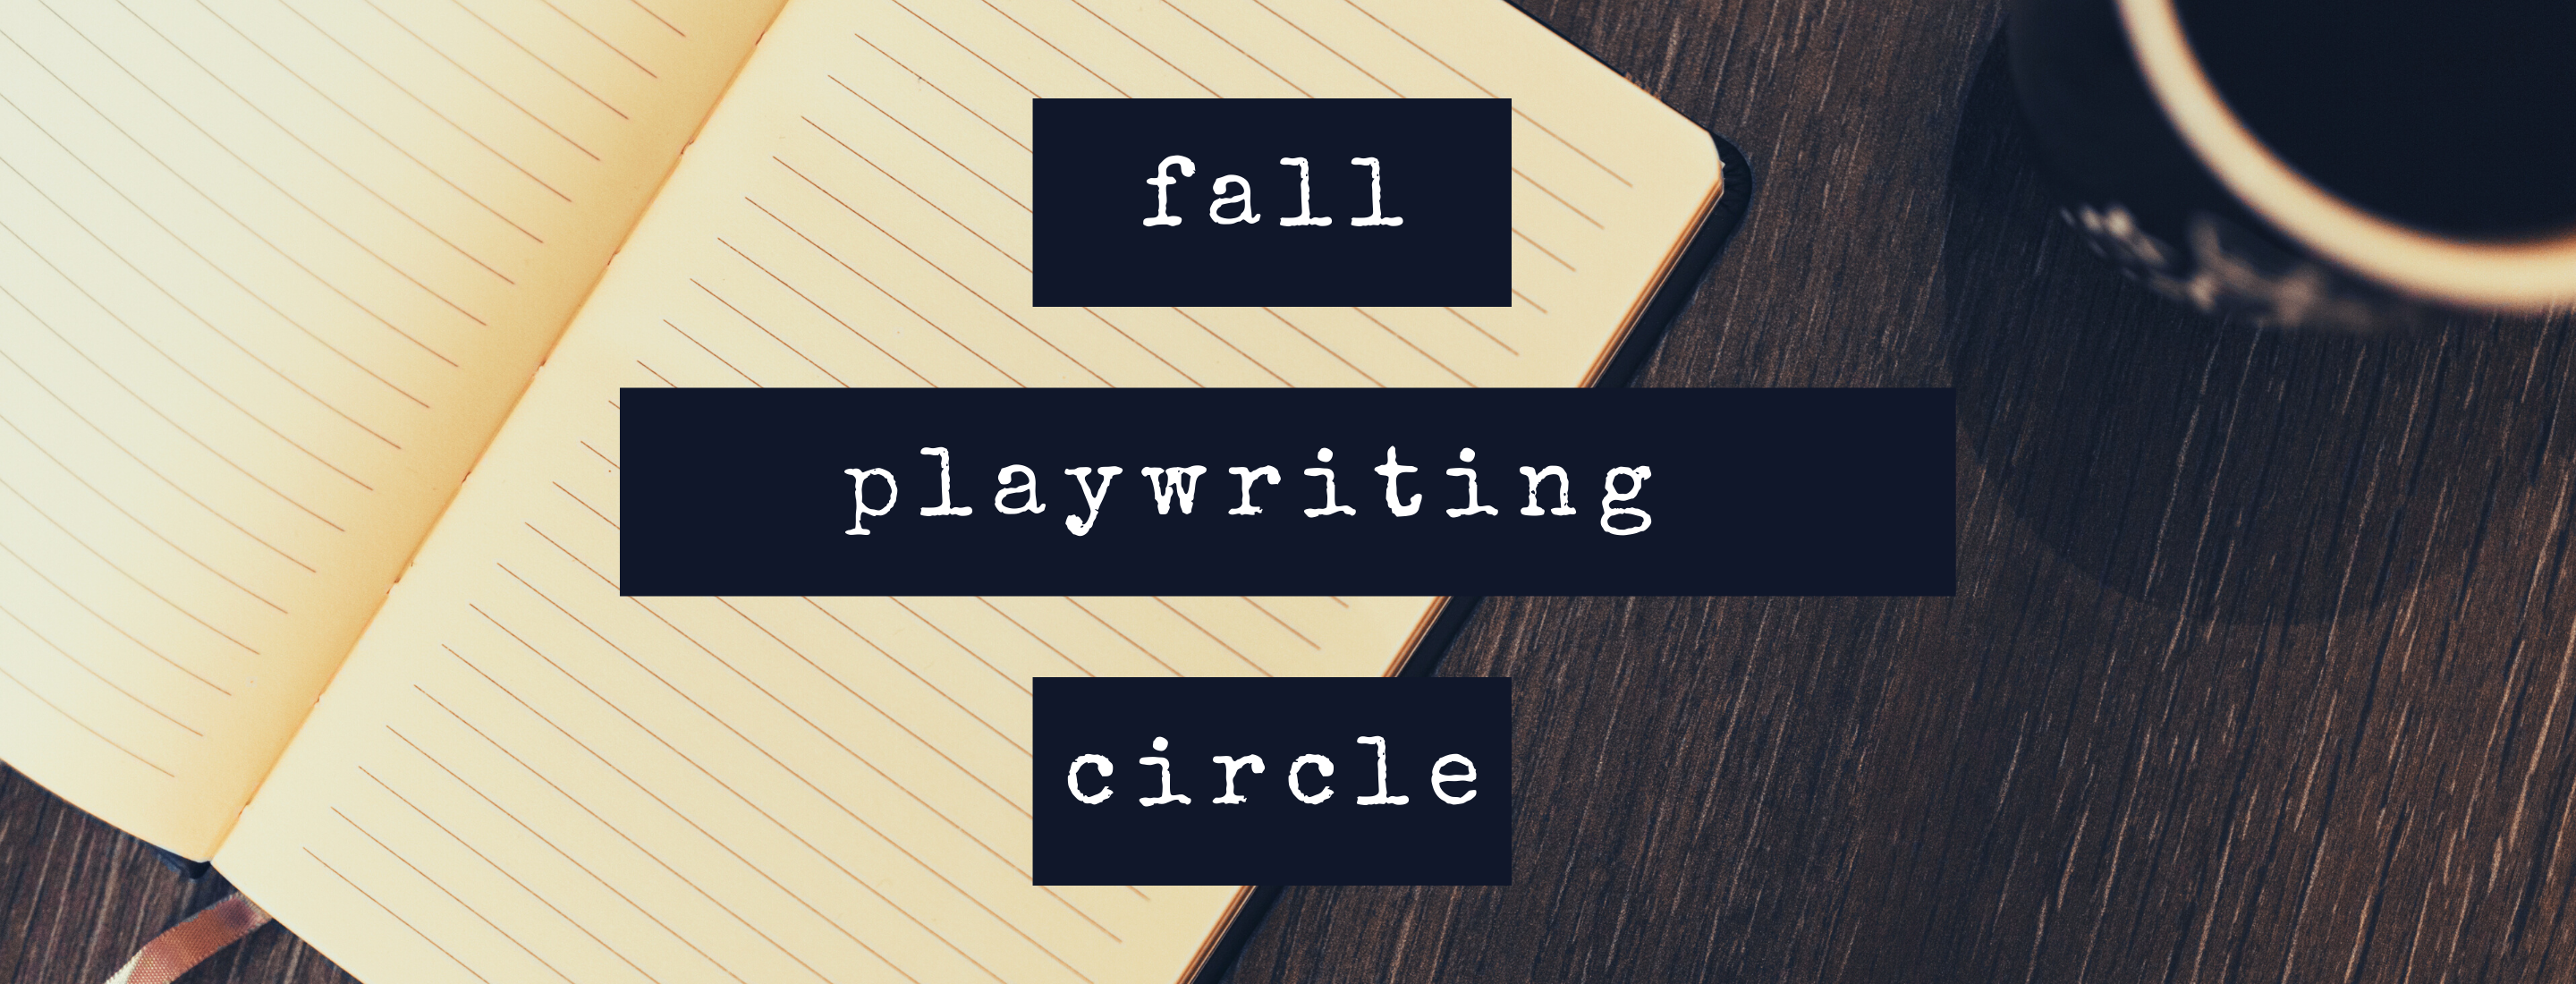 The text 'fall playwriting circle' is over top a picture of a notebook on a table.